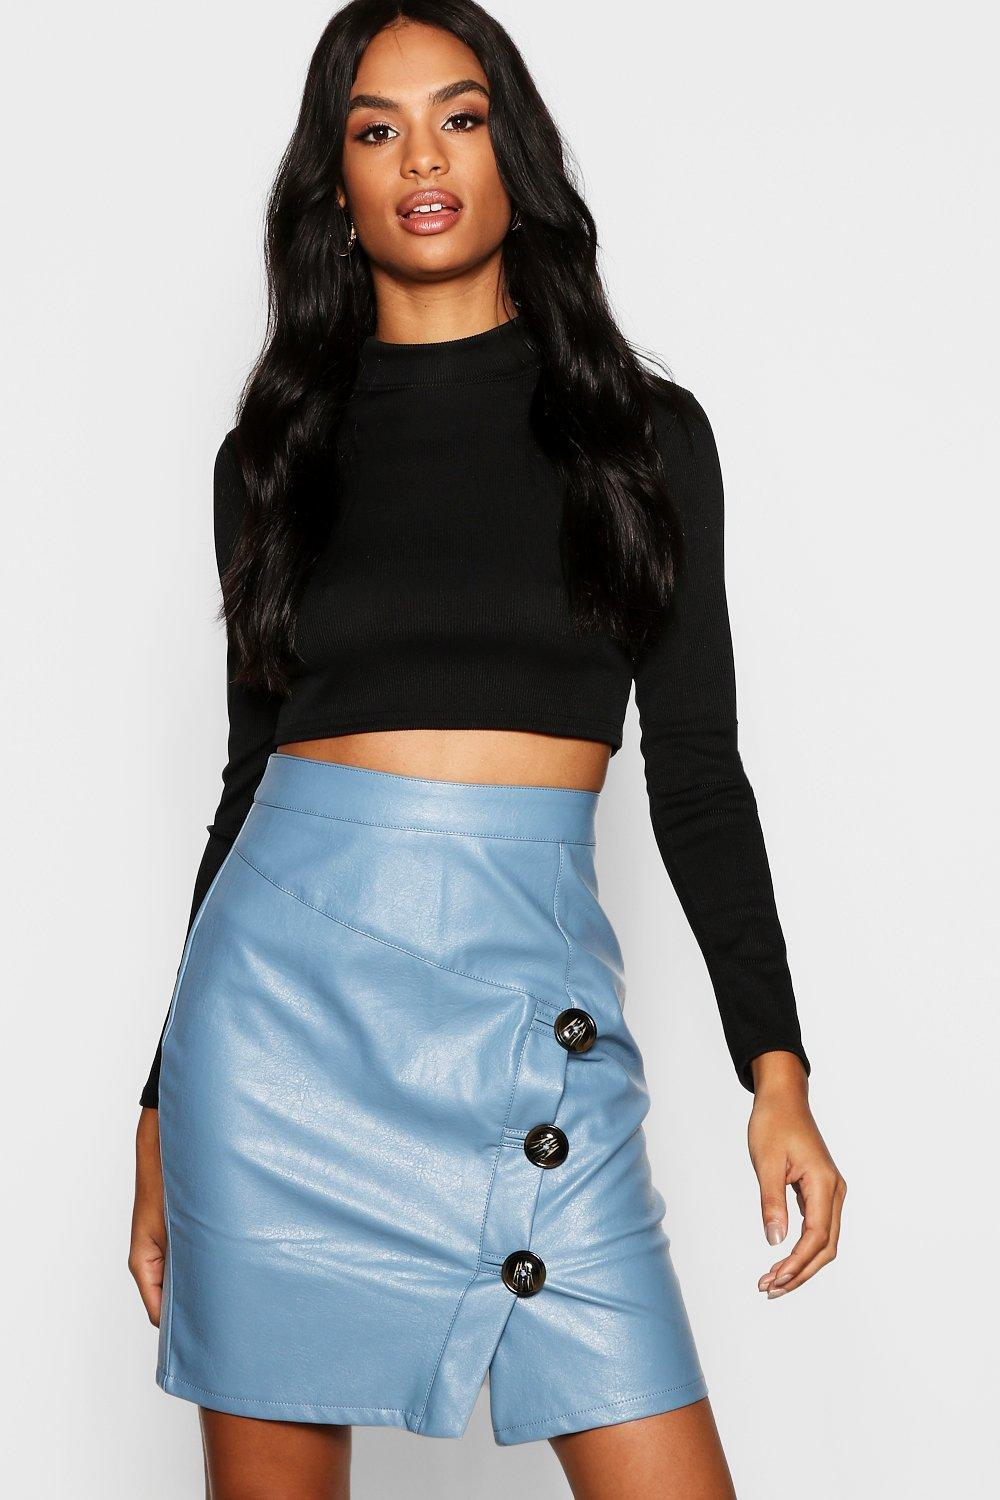 f77e88a0d1 ... Horn Button Faux Leather Mini Skirt - Lyst · Visit Boohoo. Tap to visit  site